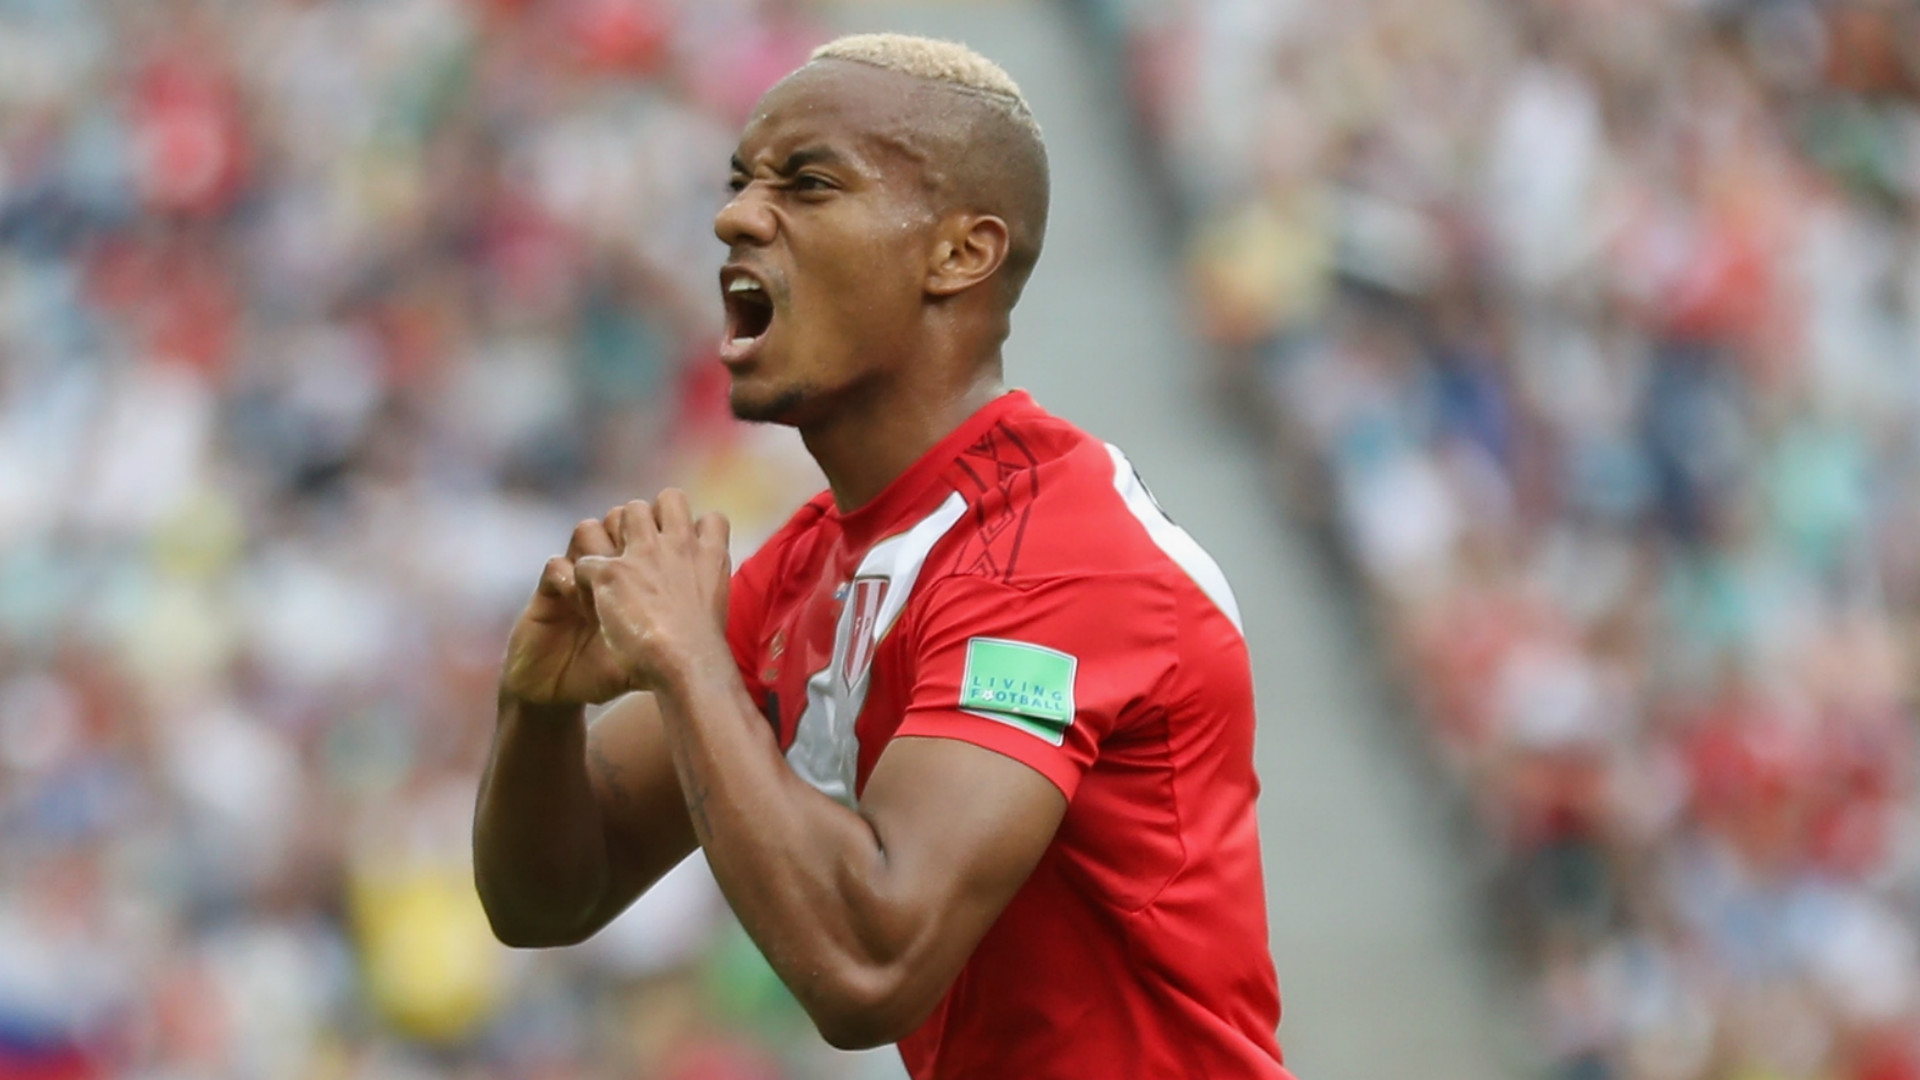 Andre Carrillo Peru 2018 World Cup